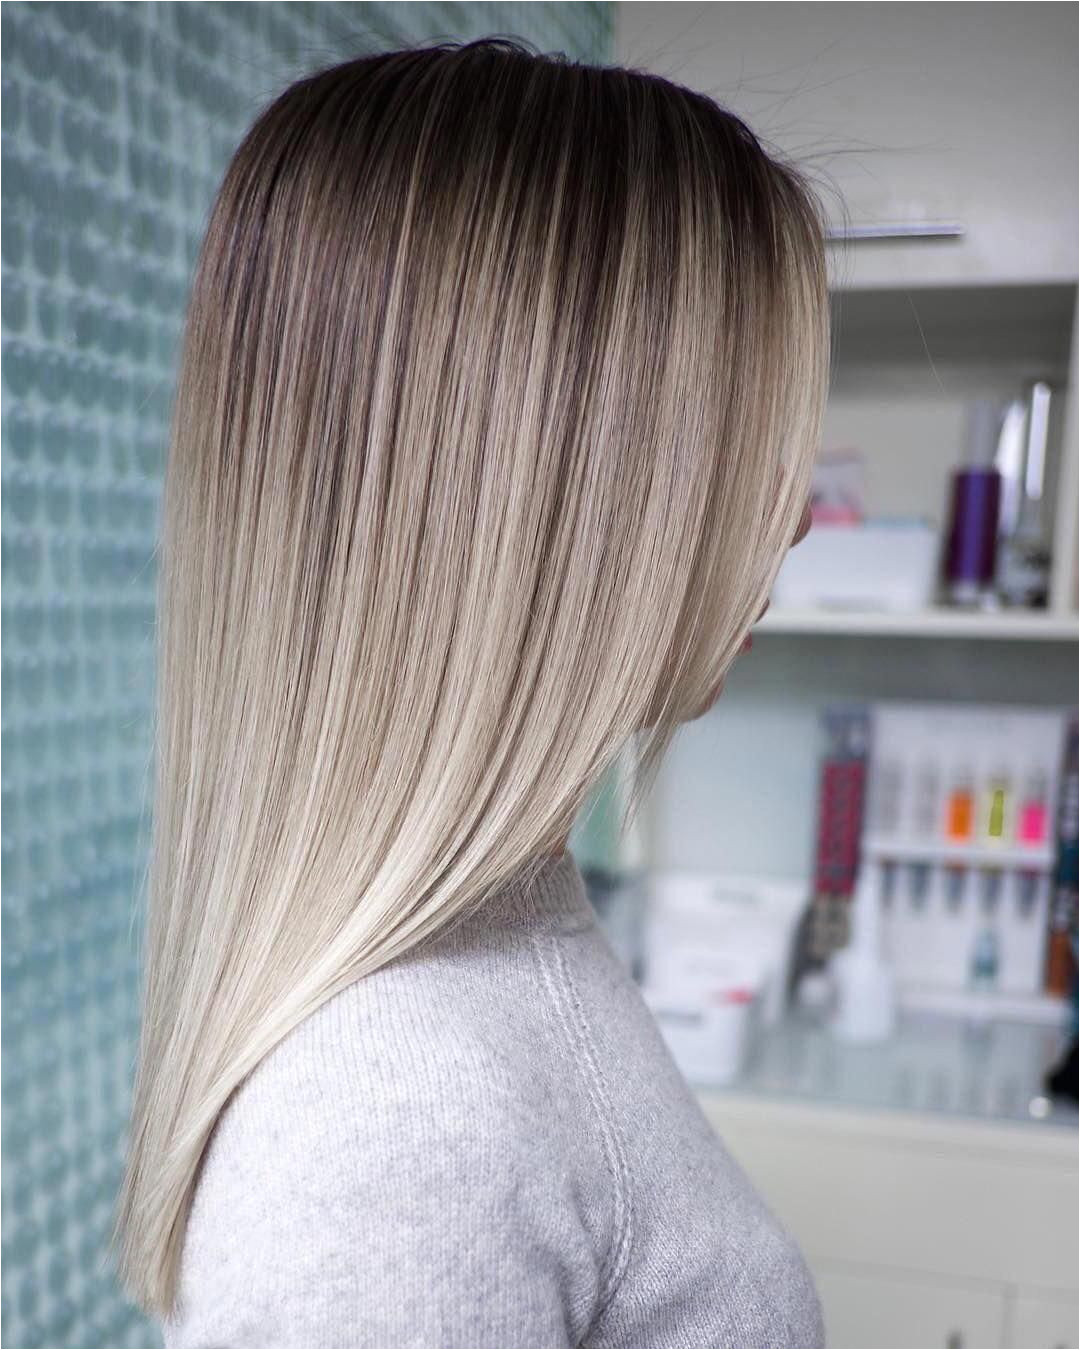 Stylish Balayage Ombre Long Hair Style for Women Long Haircut Designs